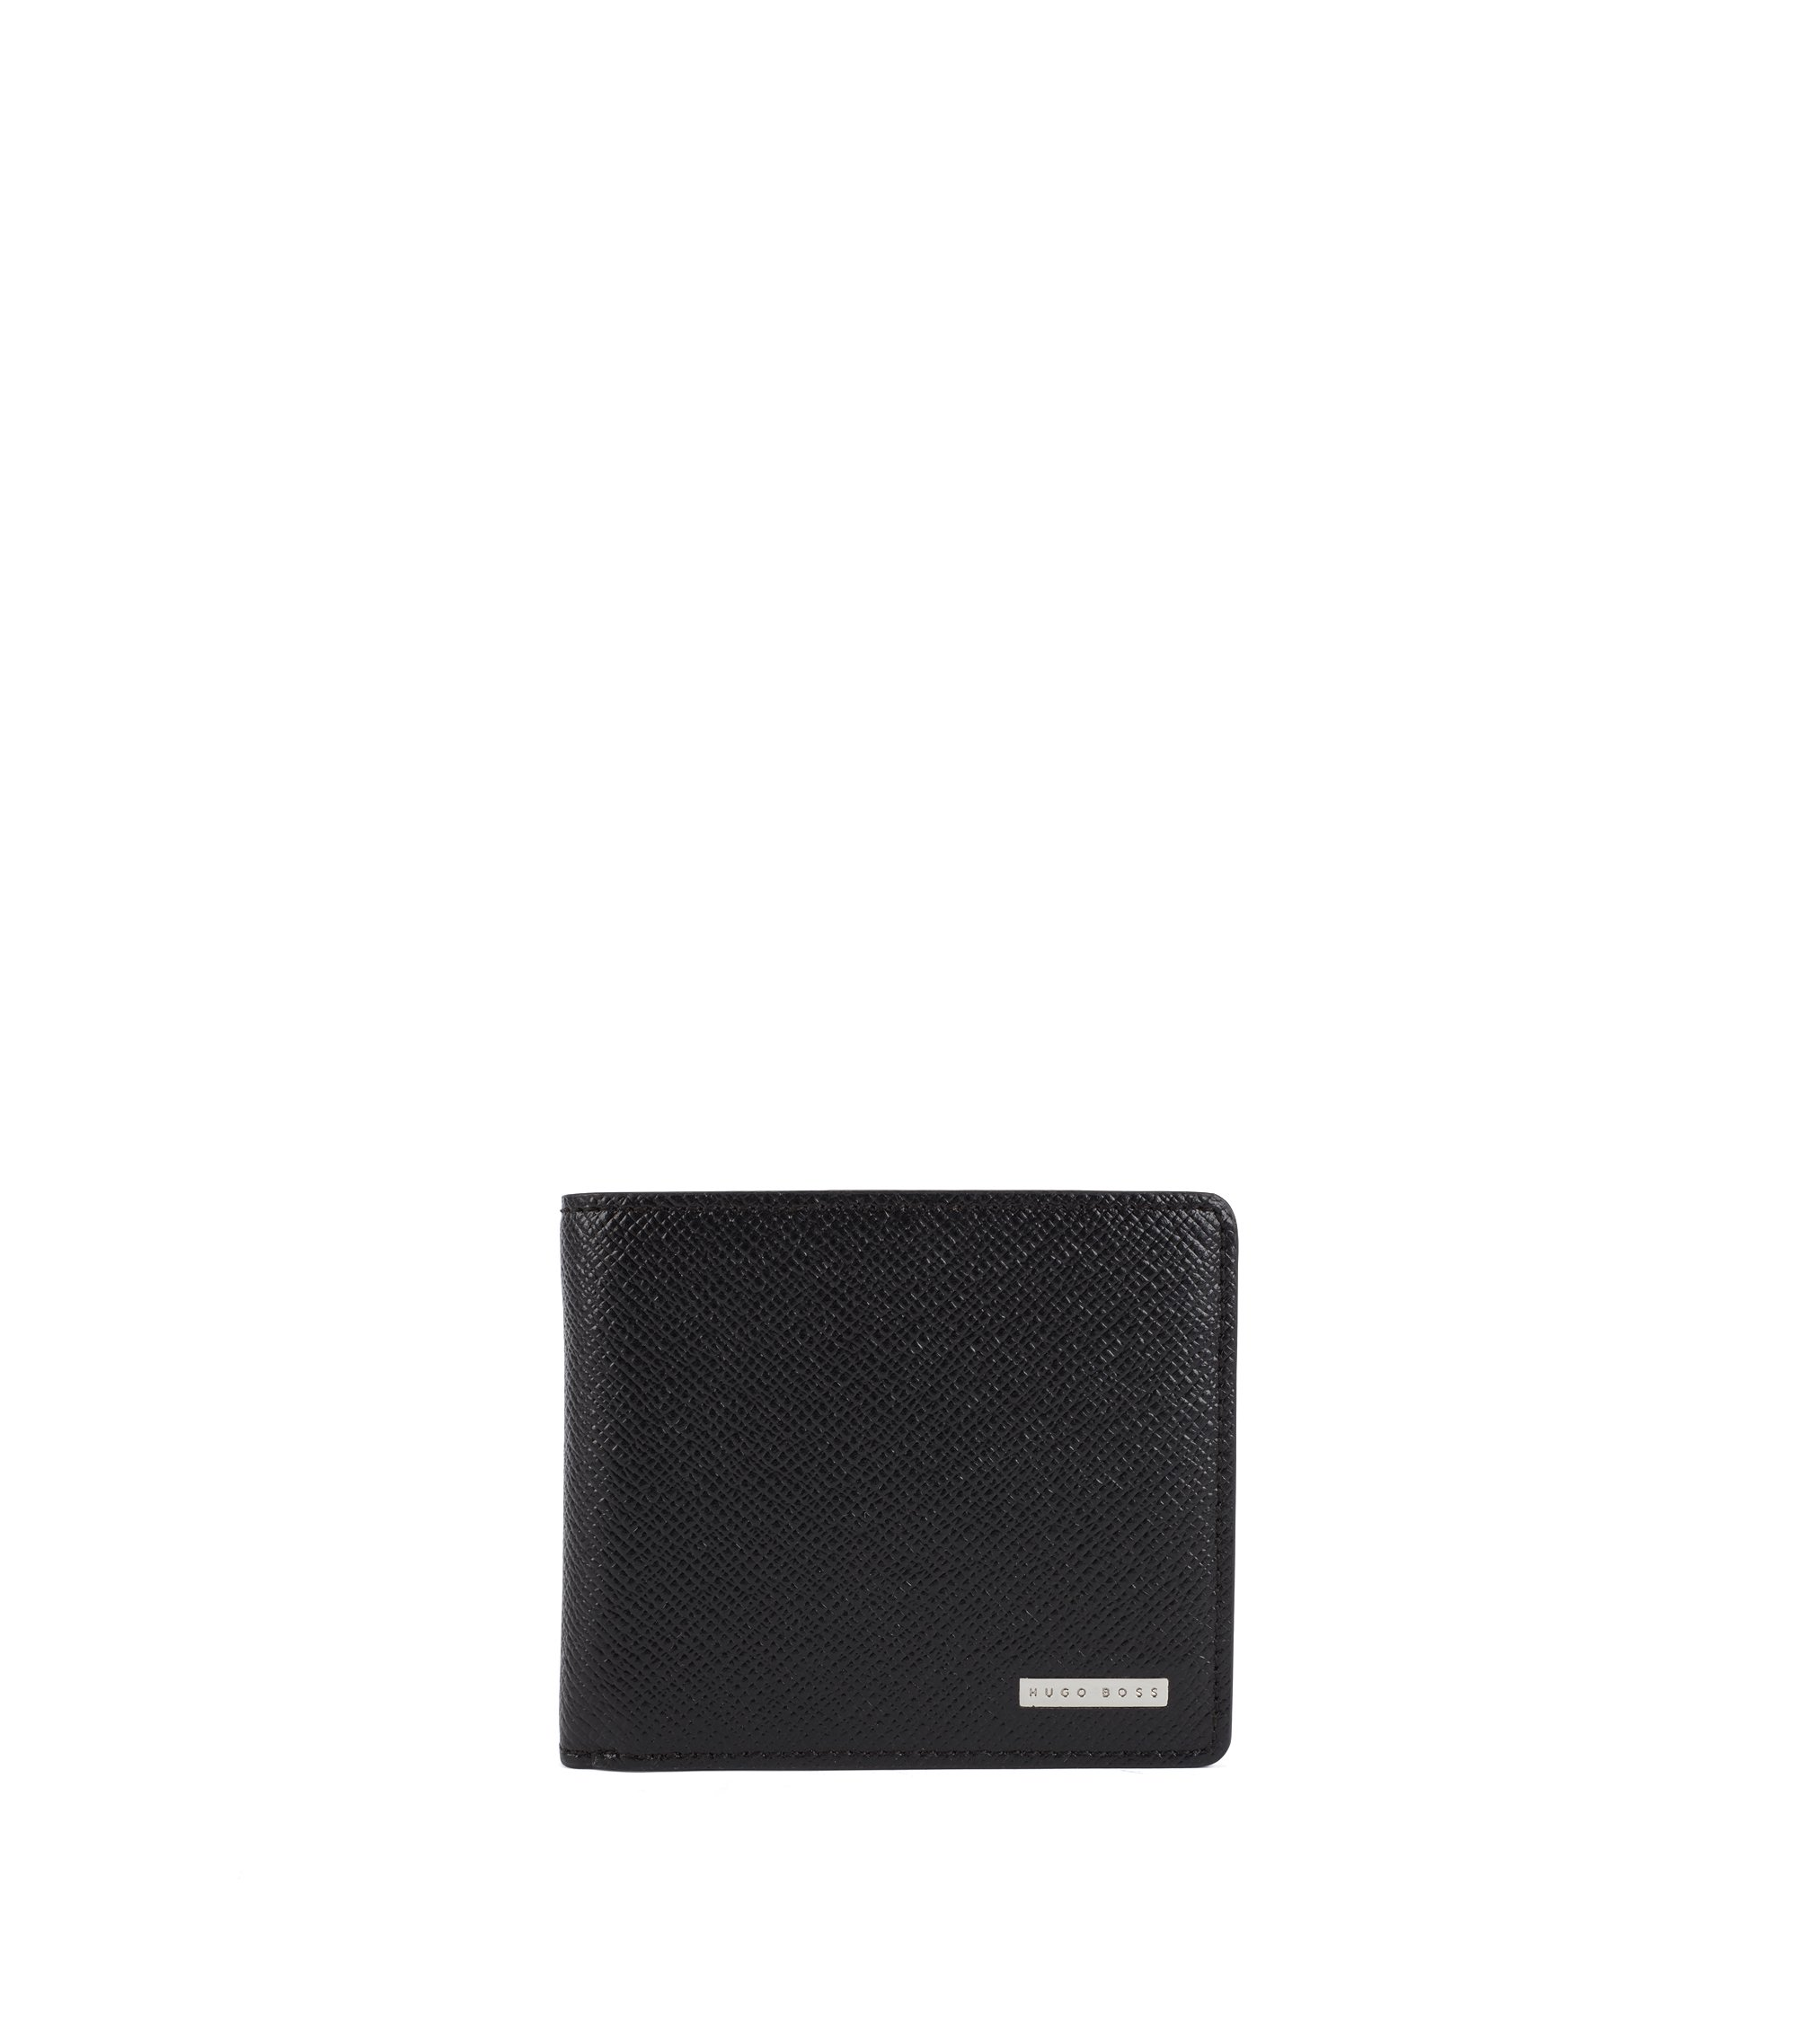 Signature Collection trifold wallet in textured leather by BOSS, Black